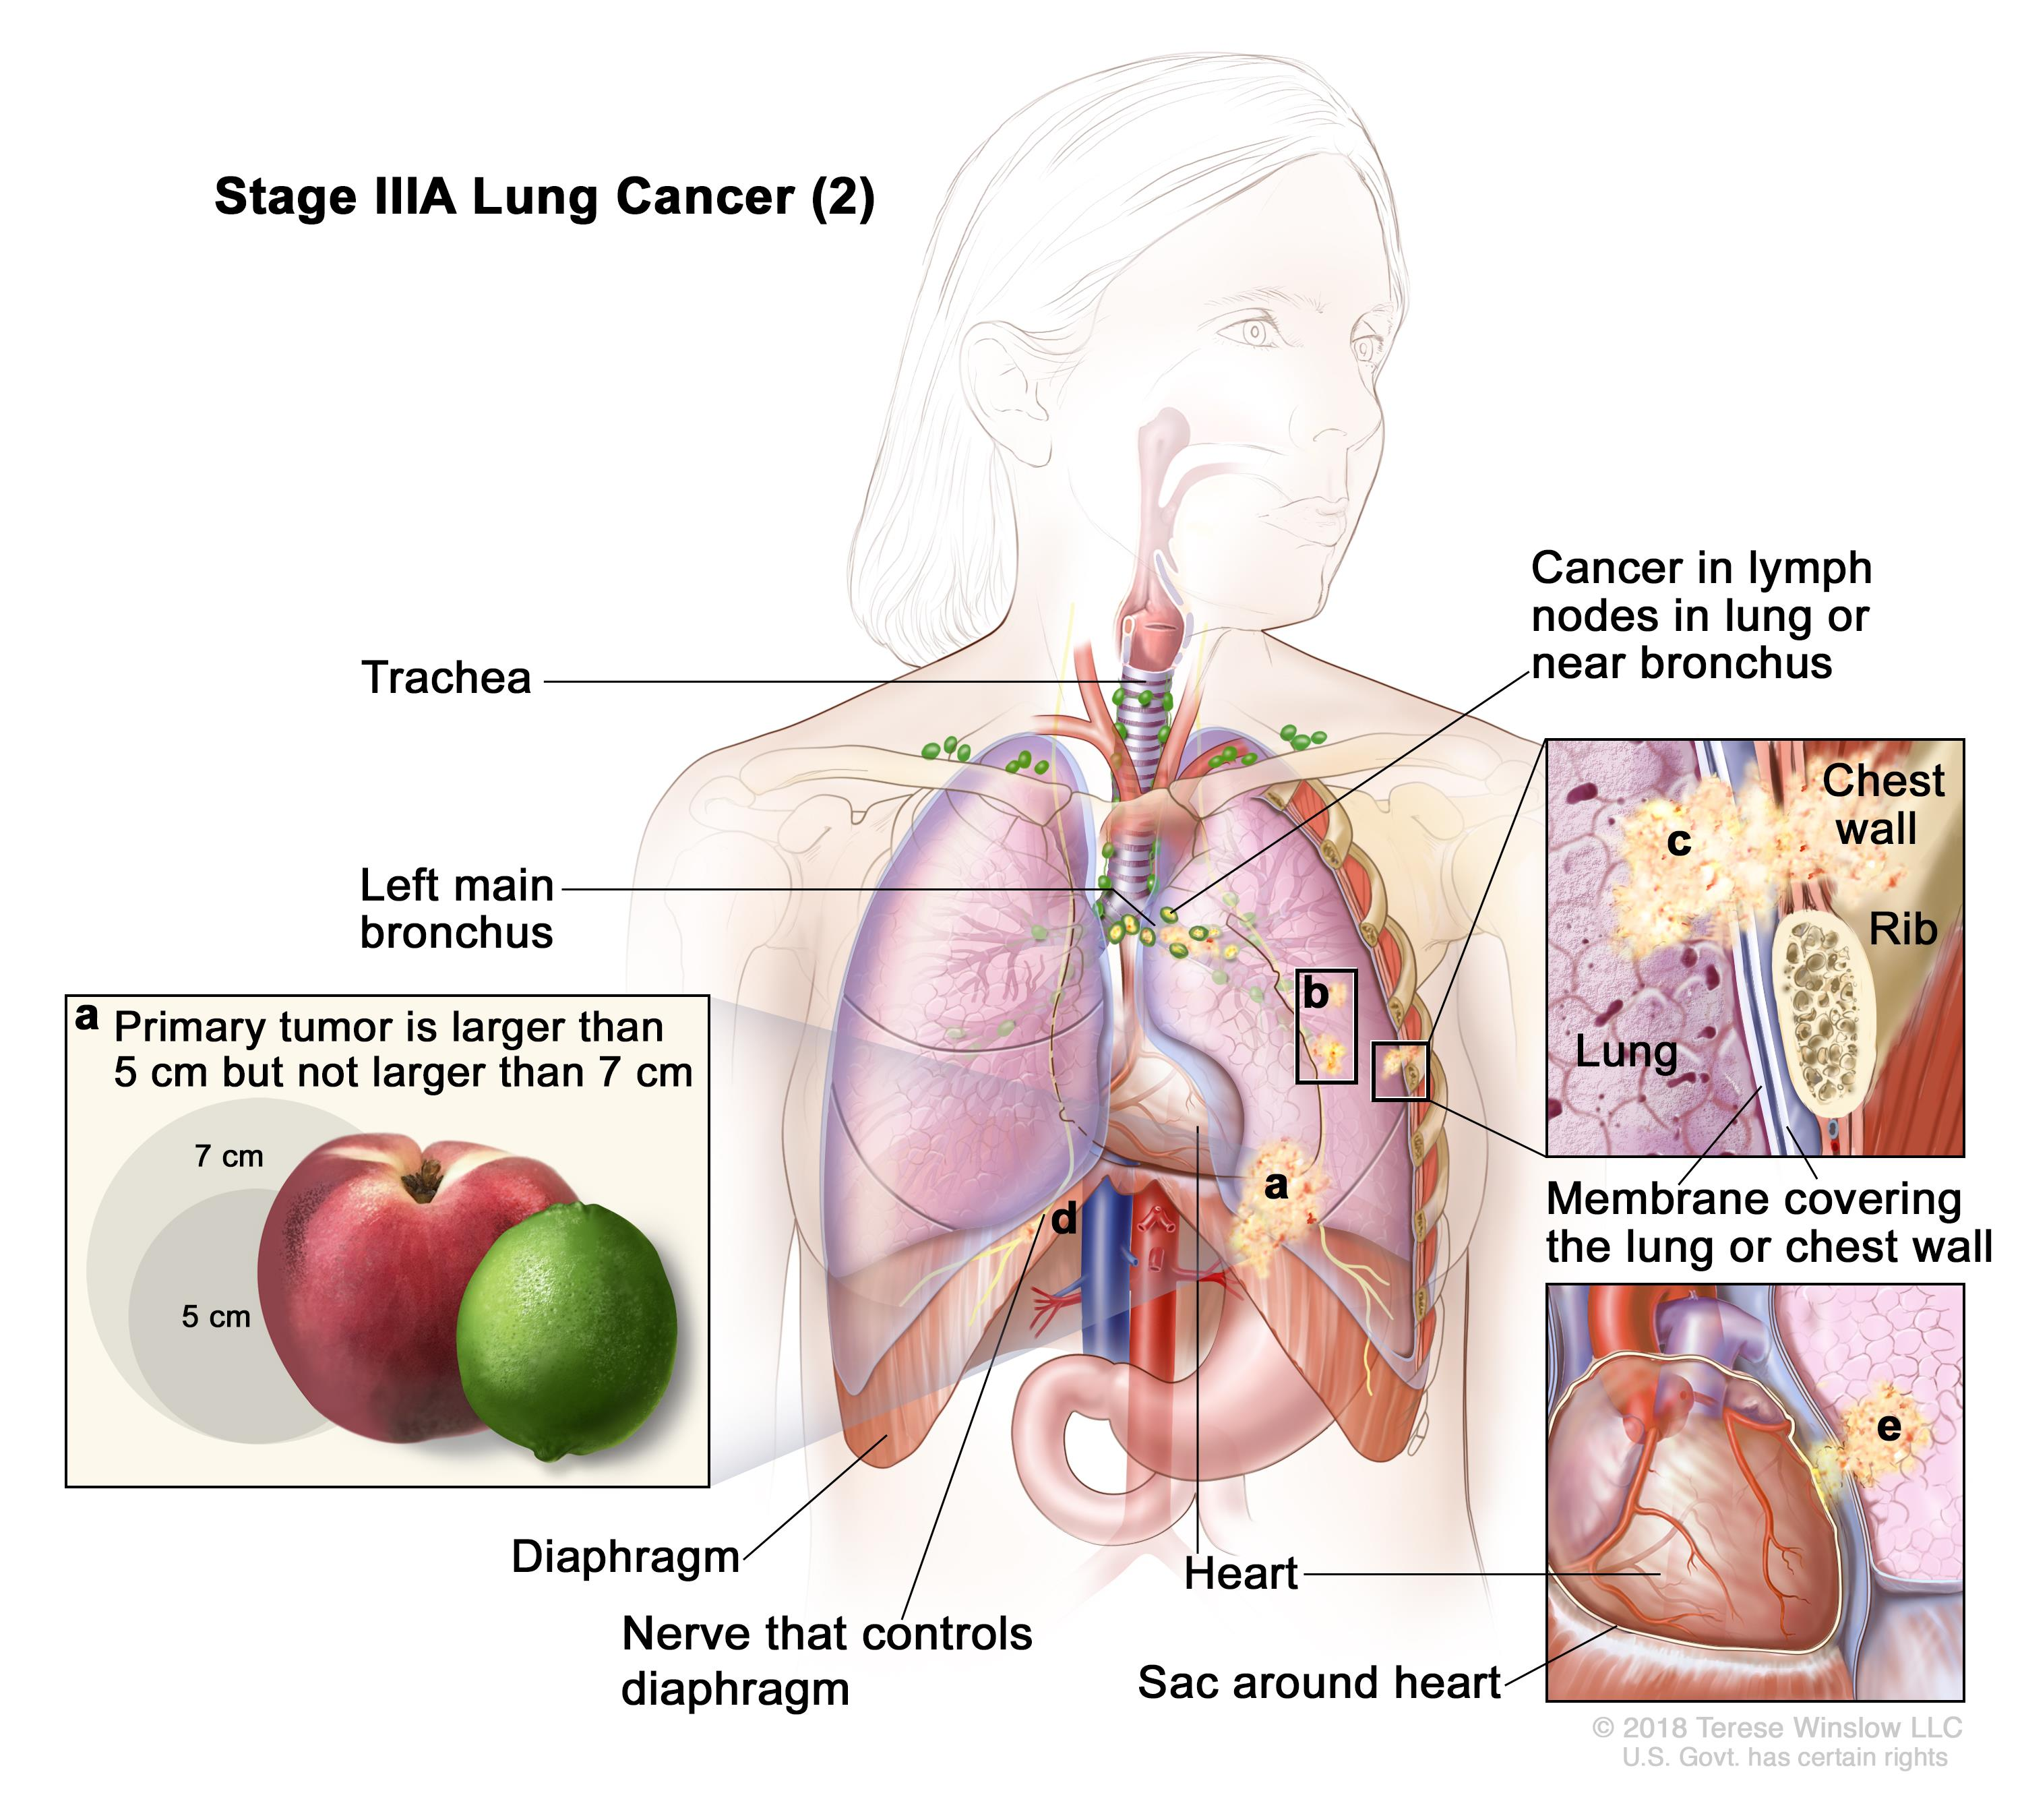 Stage IIIA lung cancer  (2). Drawing shows cancer in the lymph nodes, trachea, carina, left main bronchus, esophagus, sternum, diaphragm, and major blood vessels that lead to or from the heart; there may be separate tumors in the same lung. Top inset shows cancer that has spread from the lung through the lung lining and chest wall lining into the chest wall; a rib is also shown. Bottom inset shows cancer that has spread from the lung, through the membrane around the heart, into the heart.